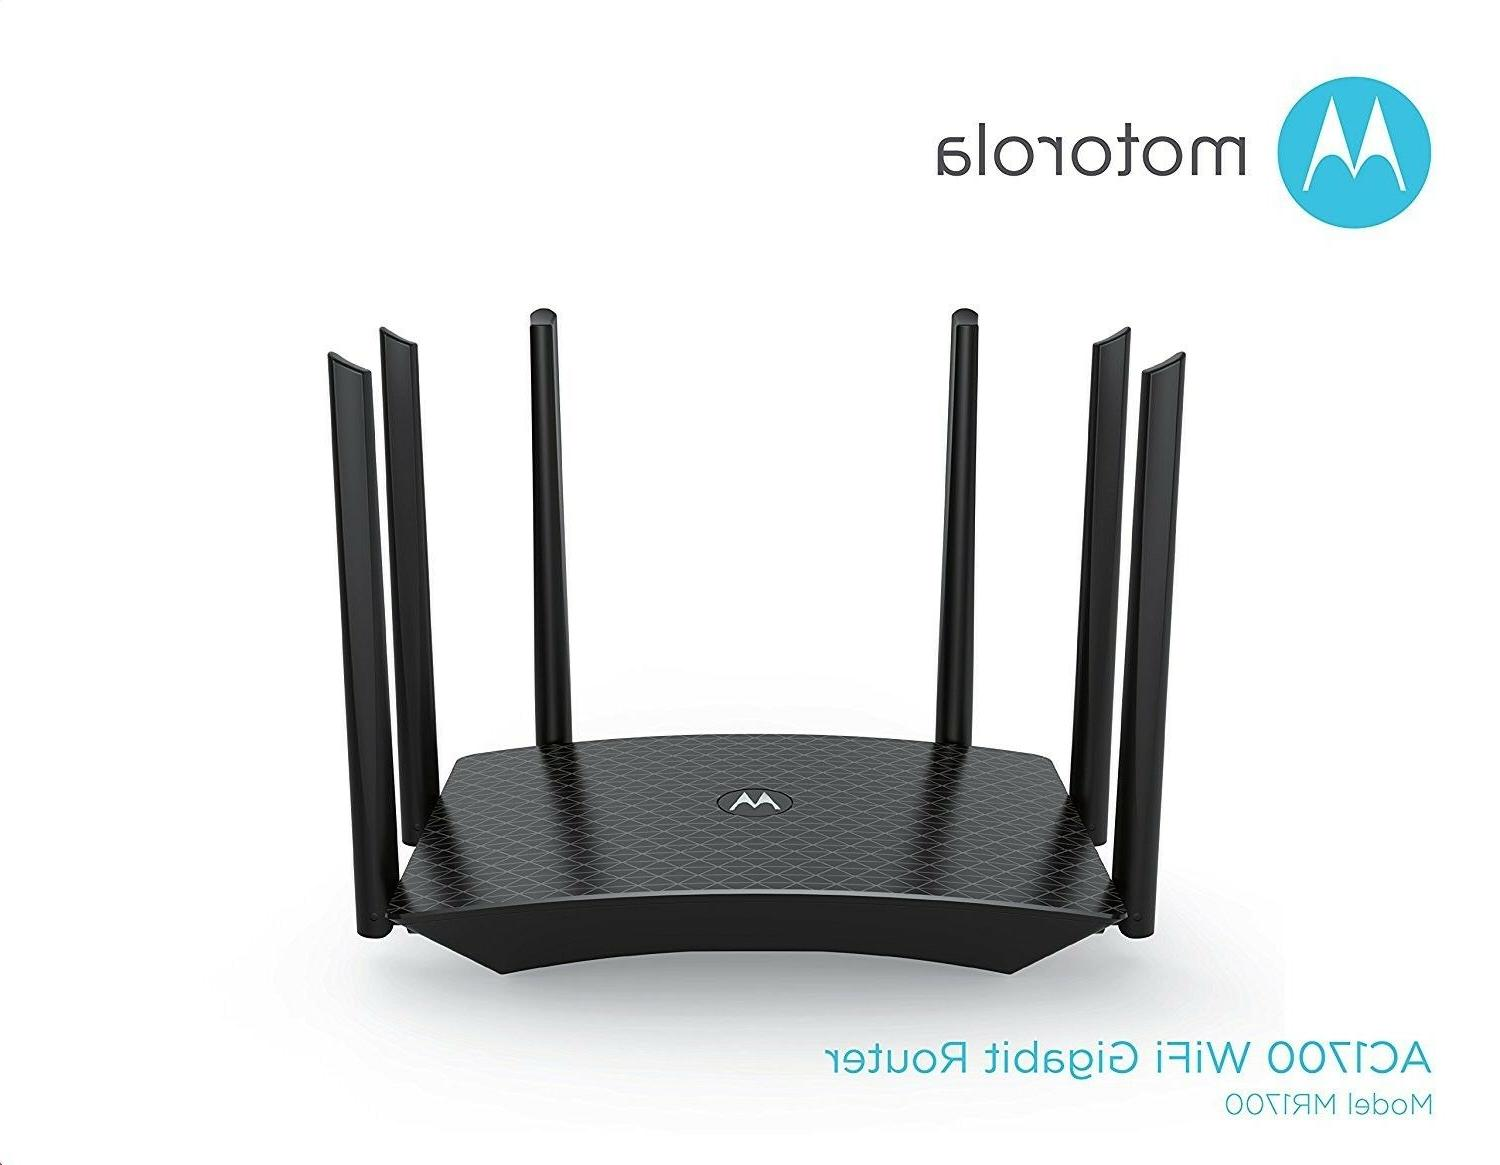 Motorola Gigabit Router with Range, Model